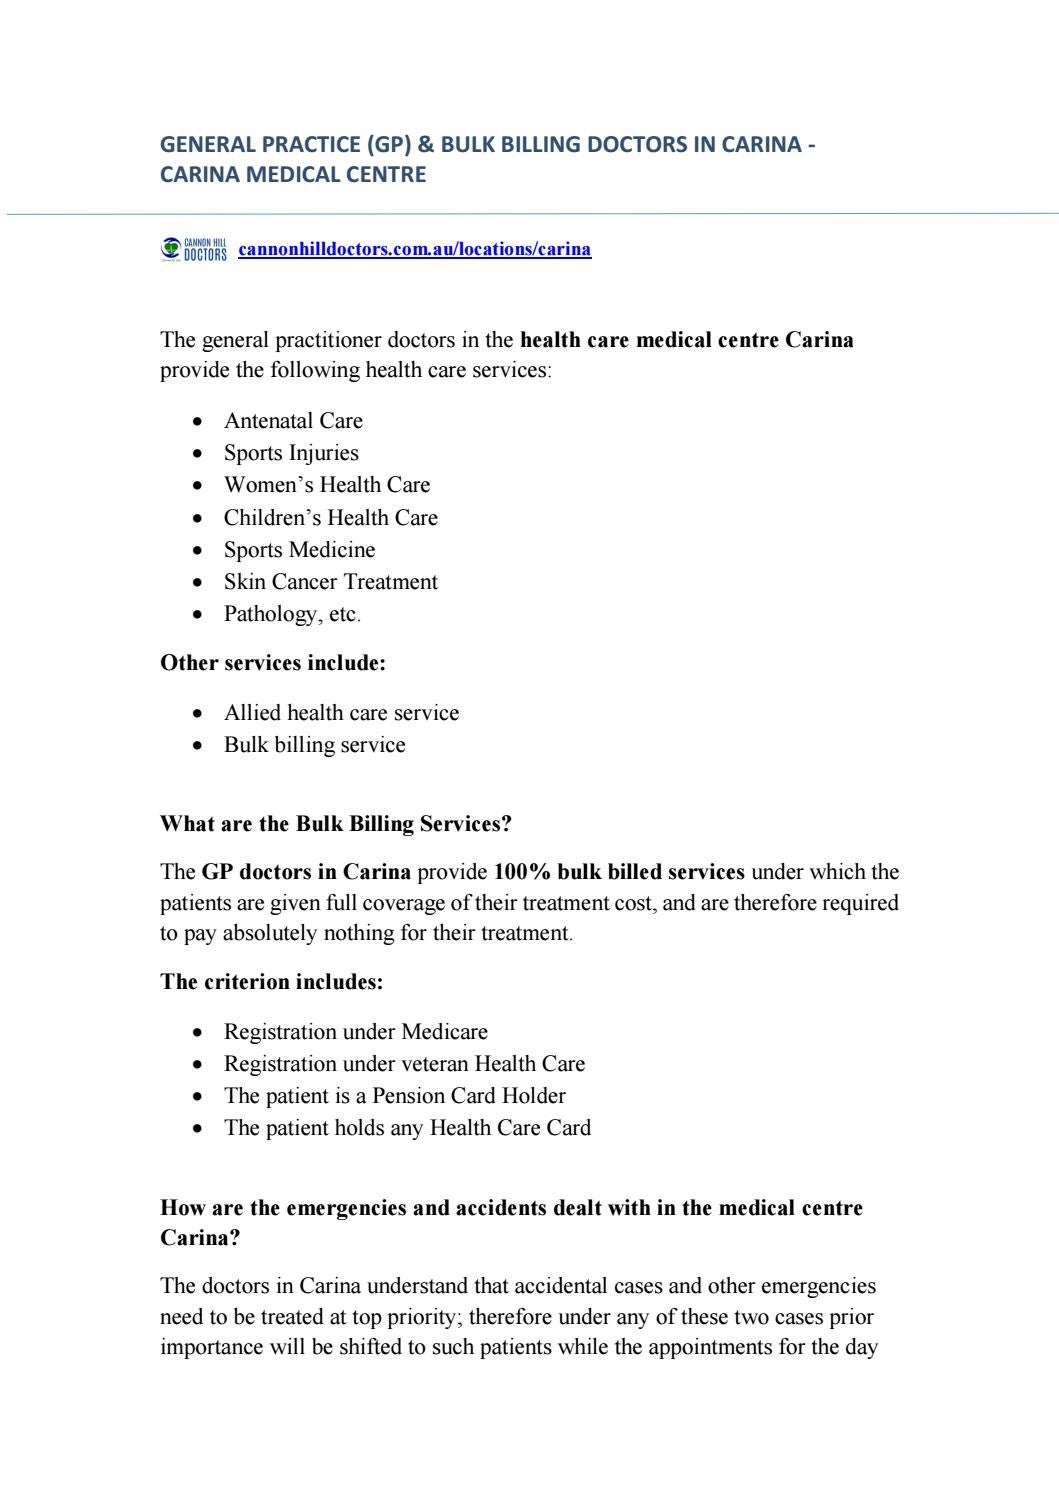 GP Doctors & Medical Centre in Carina with Bulk Billing